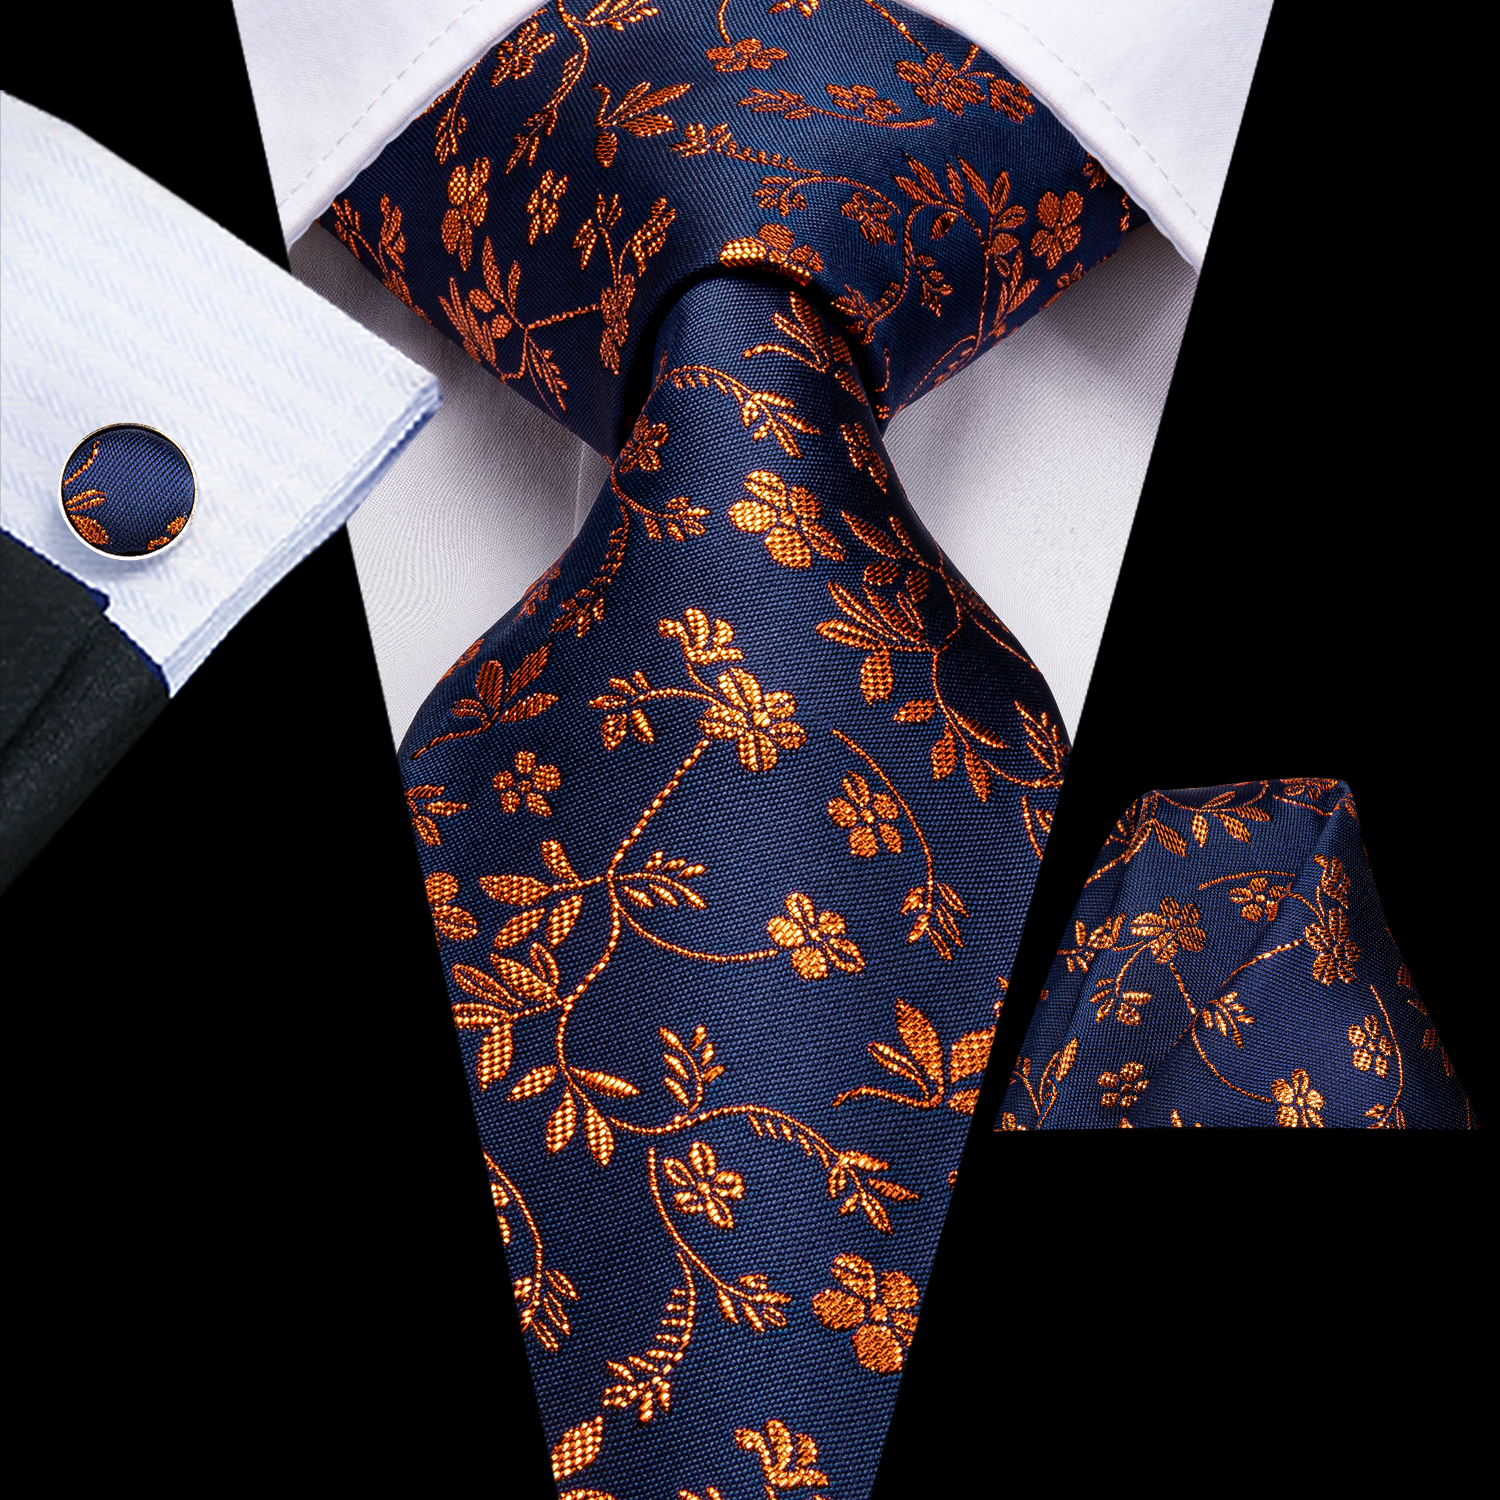 Hi-Tie Luxury Floral Paisley Ties For Men Male Desigenr Red Green Snow Ties For Christmas Adult Silk Tie Hanky Cufflinks Tie Set